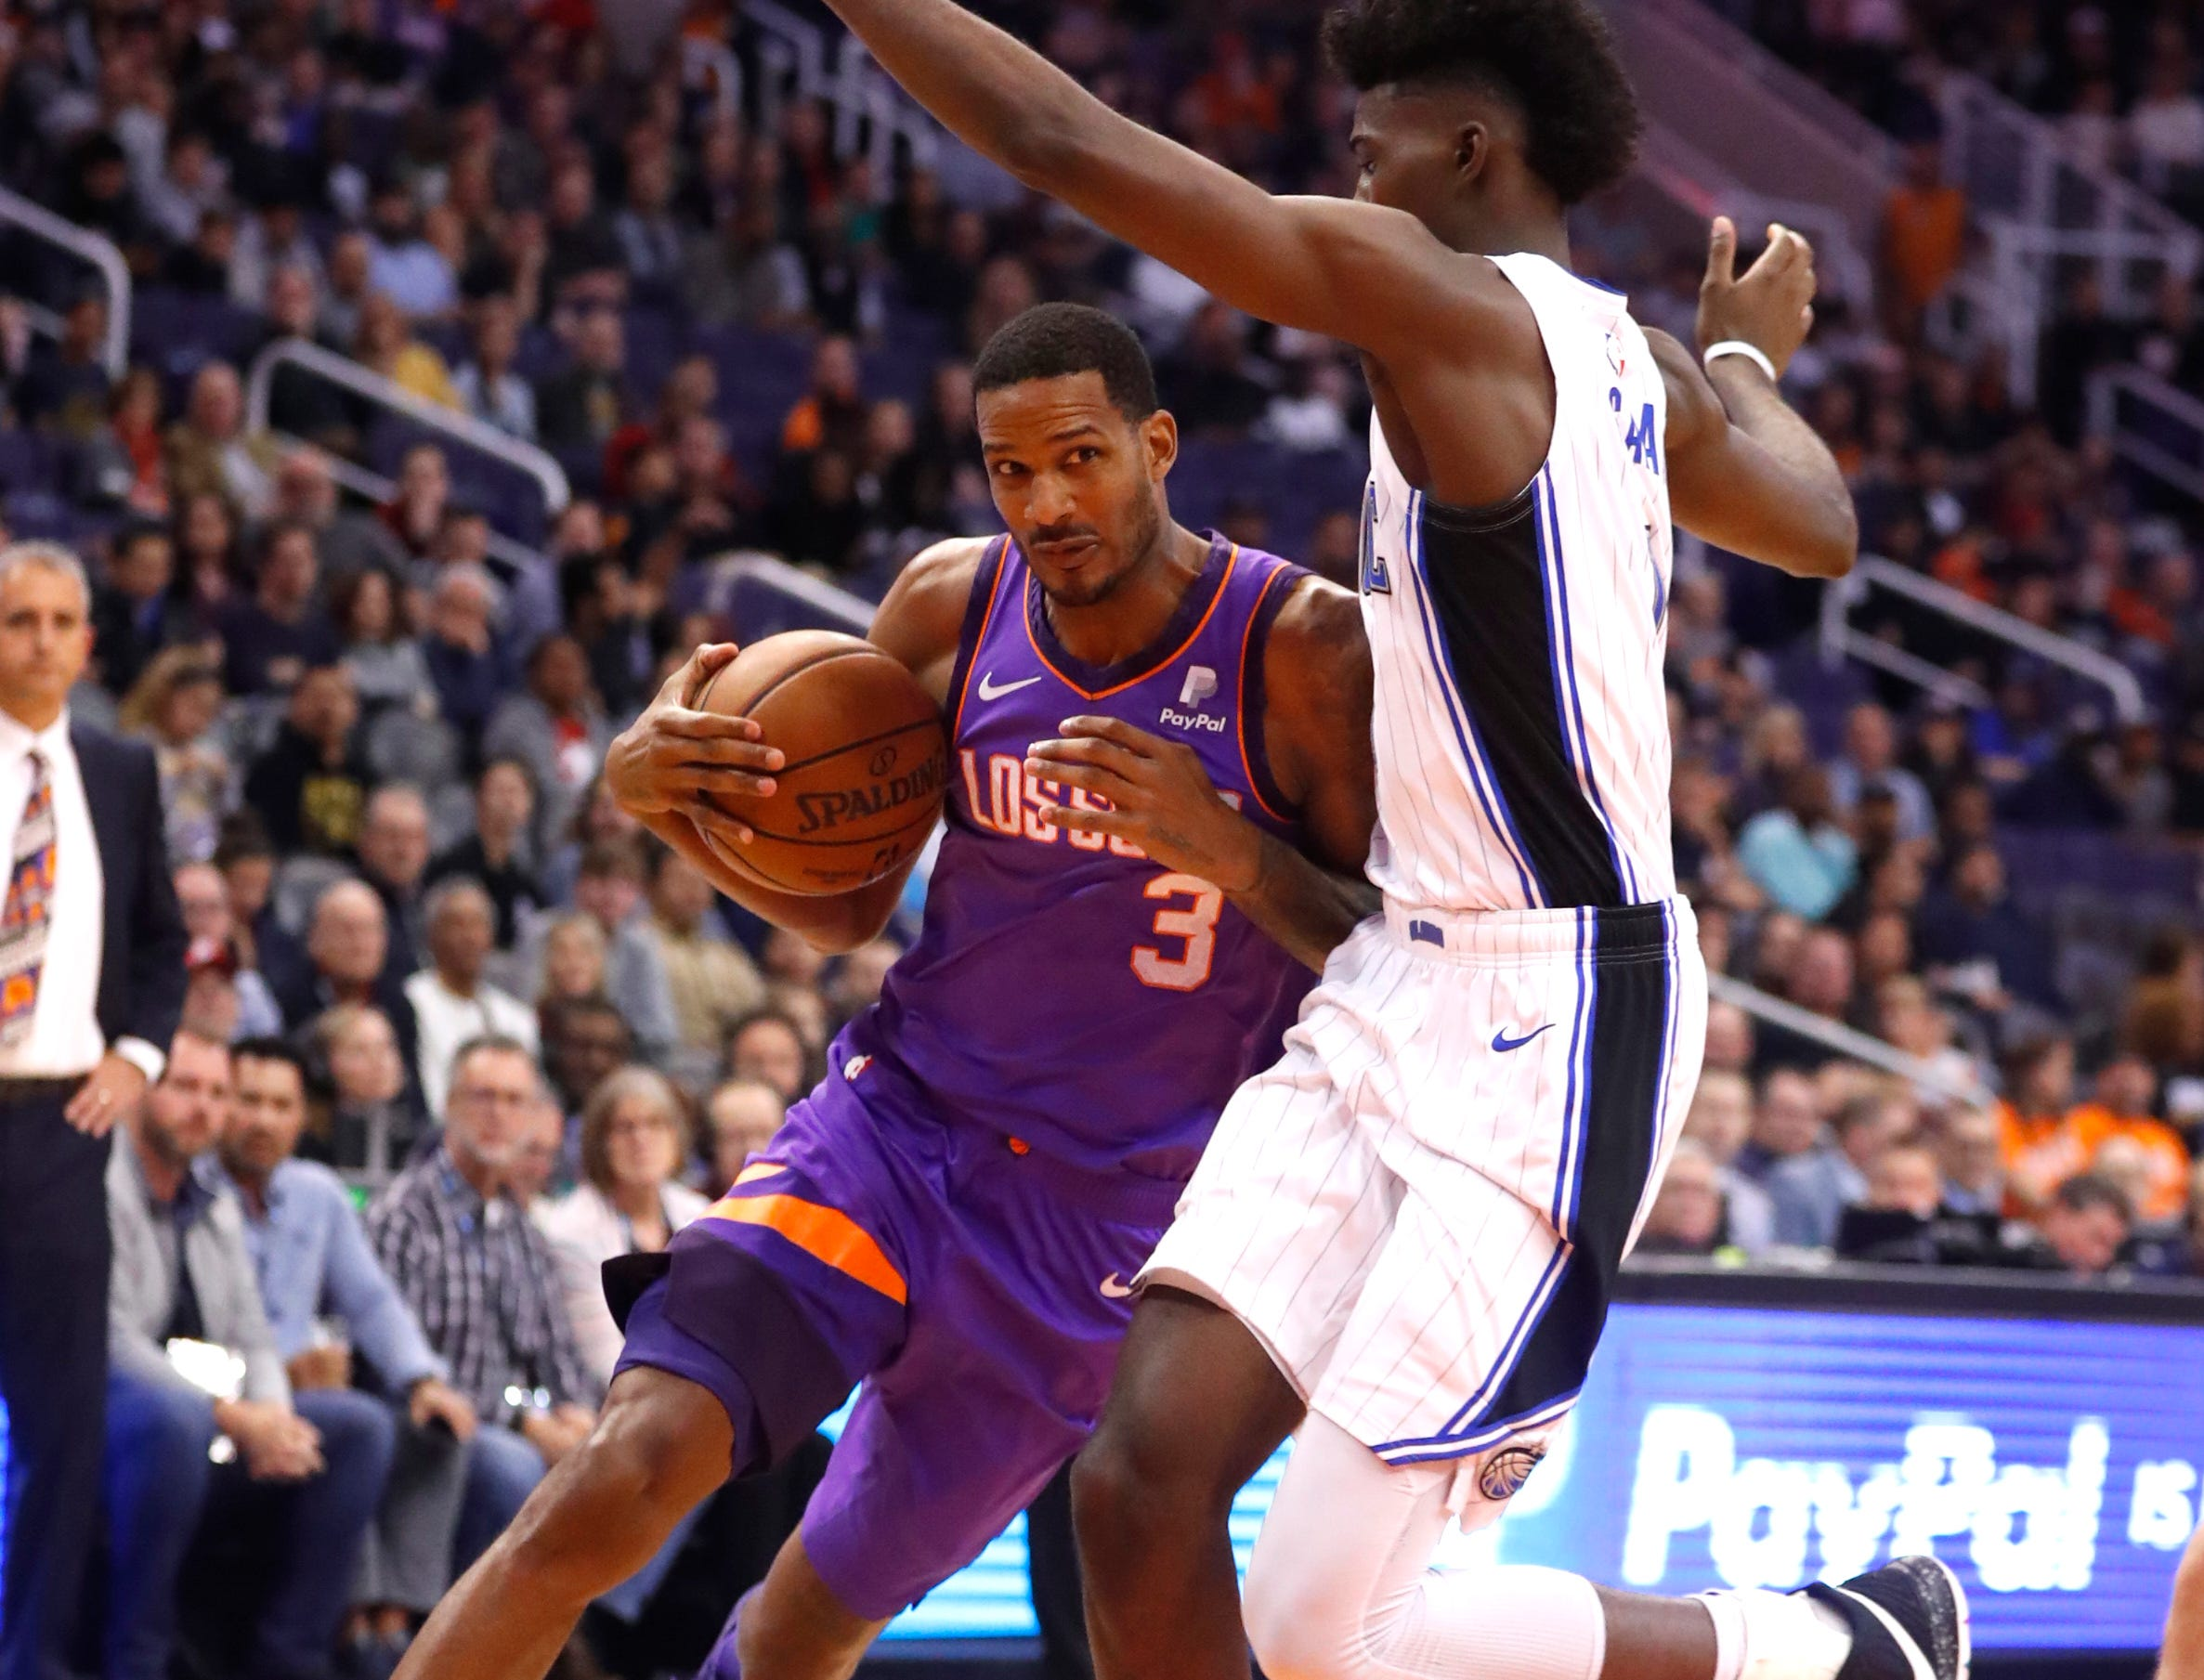 Suns' Trevor Ariza (3) drives the paint against Magic's Jonathan Isaac (1) during the first half at Talking Stick Resort Arena in Phoenix, Ariz. on November 30, 2018.